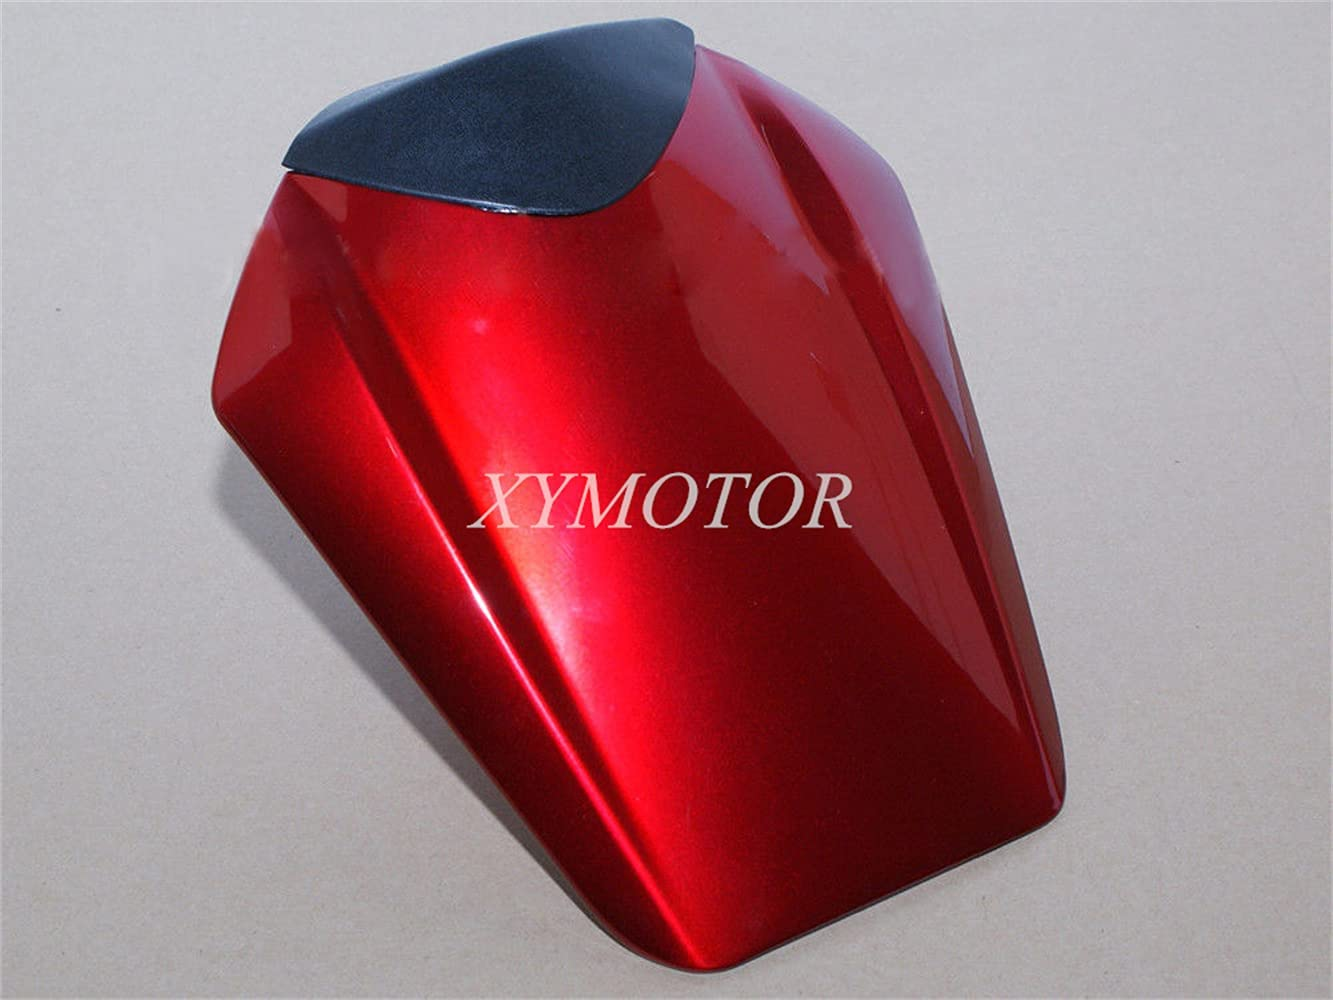 XYMOTOR Rear Sale Special Price seat Cover New color Cowl for 2008-20 Fairing Honda CBR1000RR